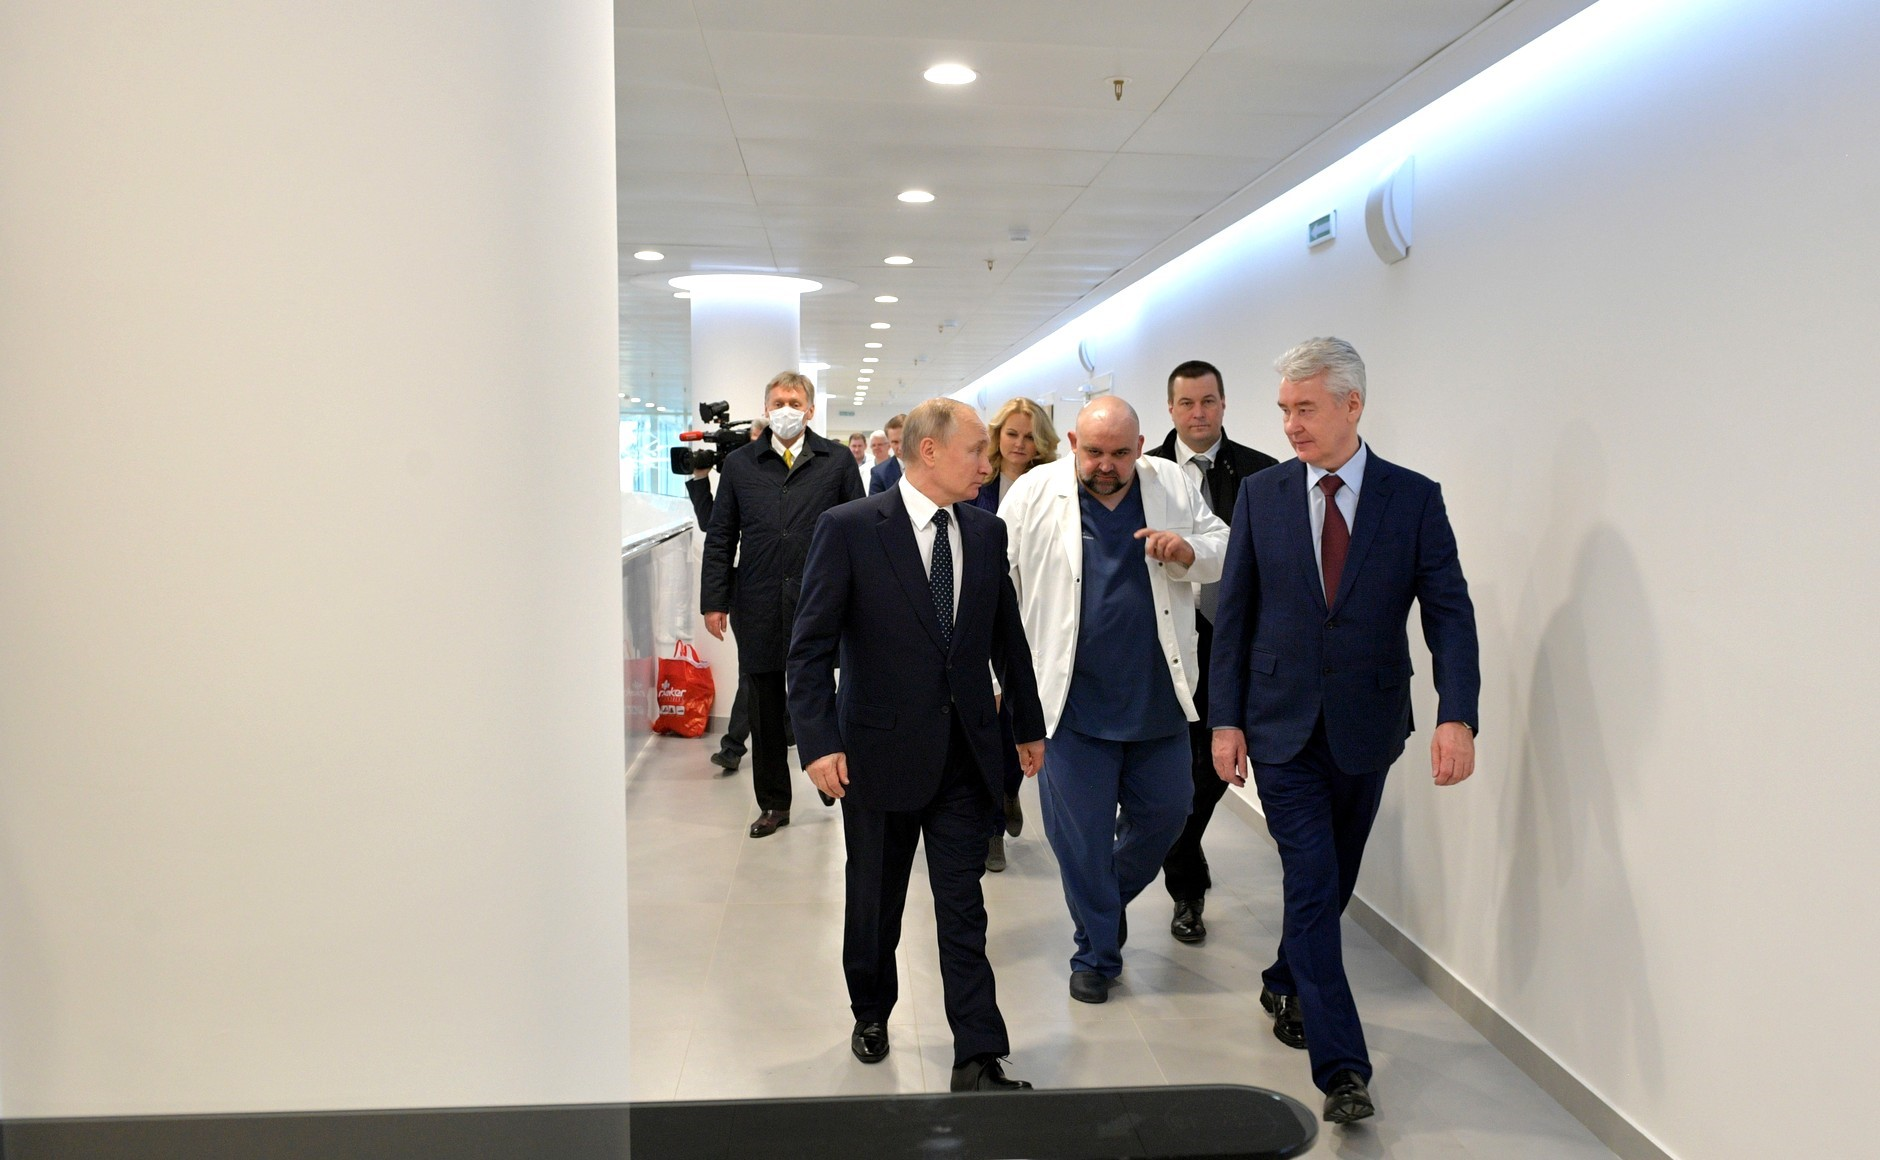 Coronavirus in Russia: Moscow's Sobyanin Plays a Risky Game